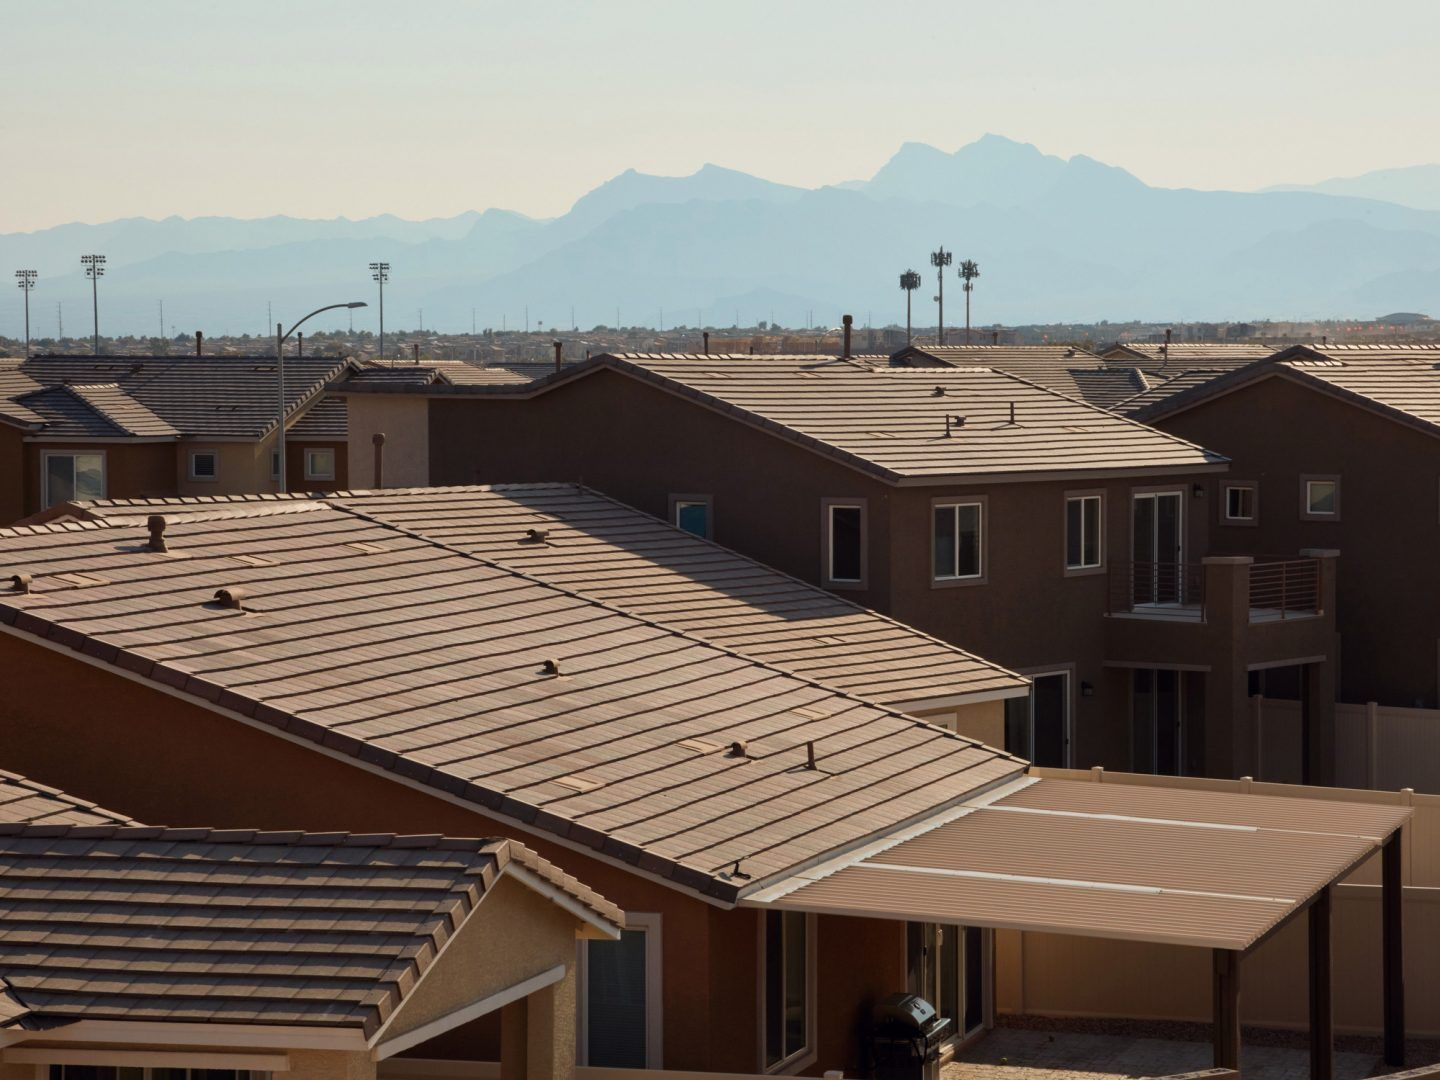 IGNANT-Photography-Ross-Mantle-North-Las-Vegas-021